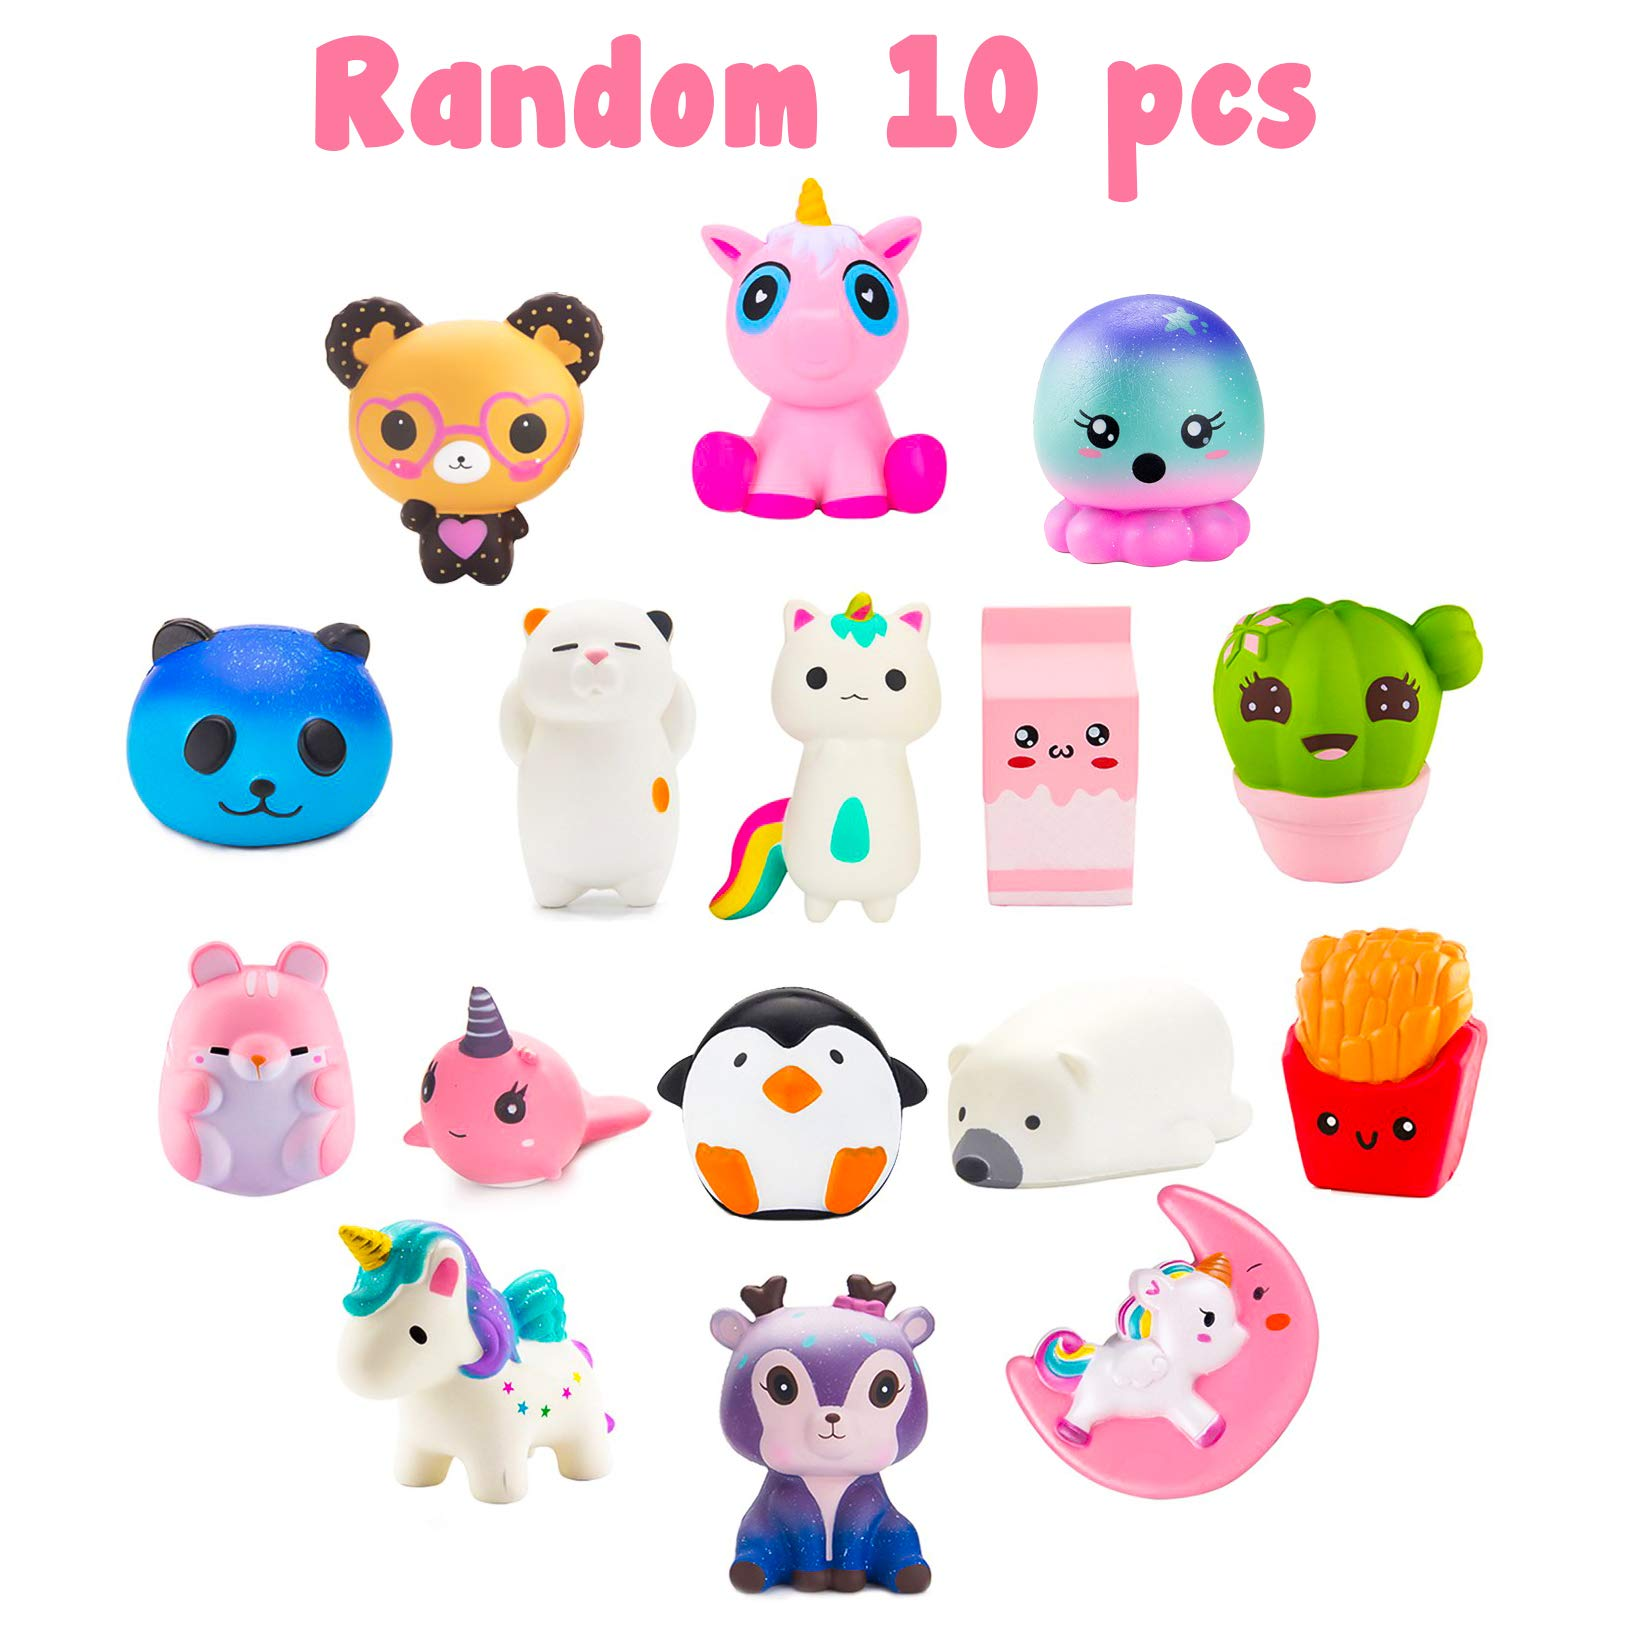 BeYumi Slow Rising Toy, Unicorn, Panda, Deer, Cat Squishy Toy, Kawaii Jumbo 10 Pcs Cream Scented Simulation Cute Animal & Food Squeeze Toys for Collection Gift, Decorative props Large or Stress Relief by BeYumi (Image #3)